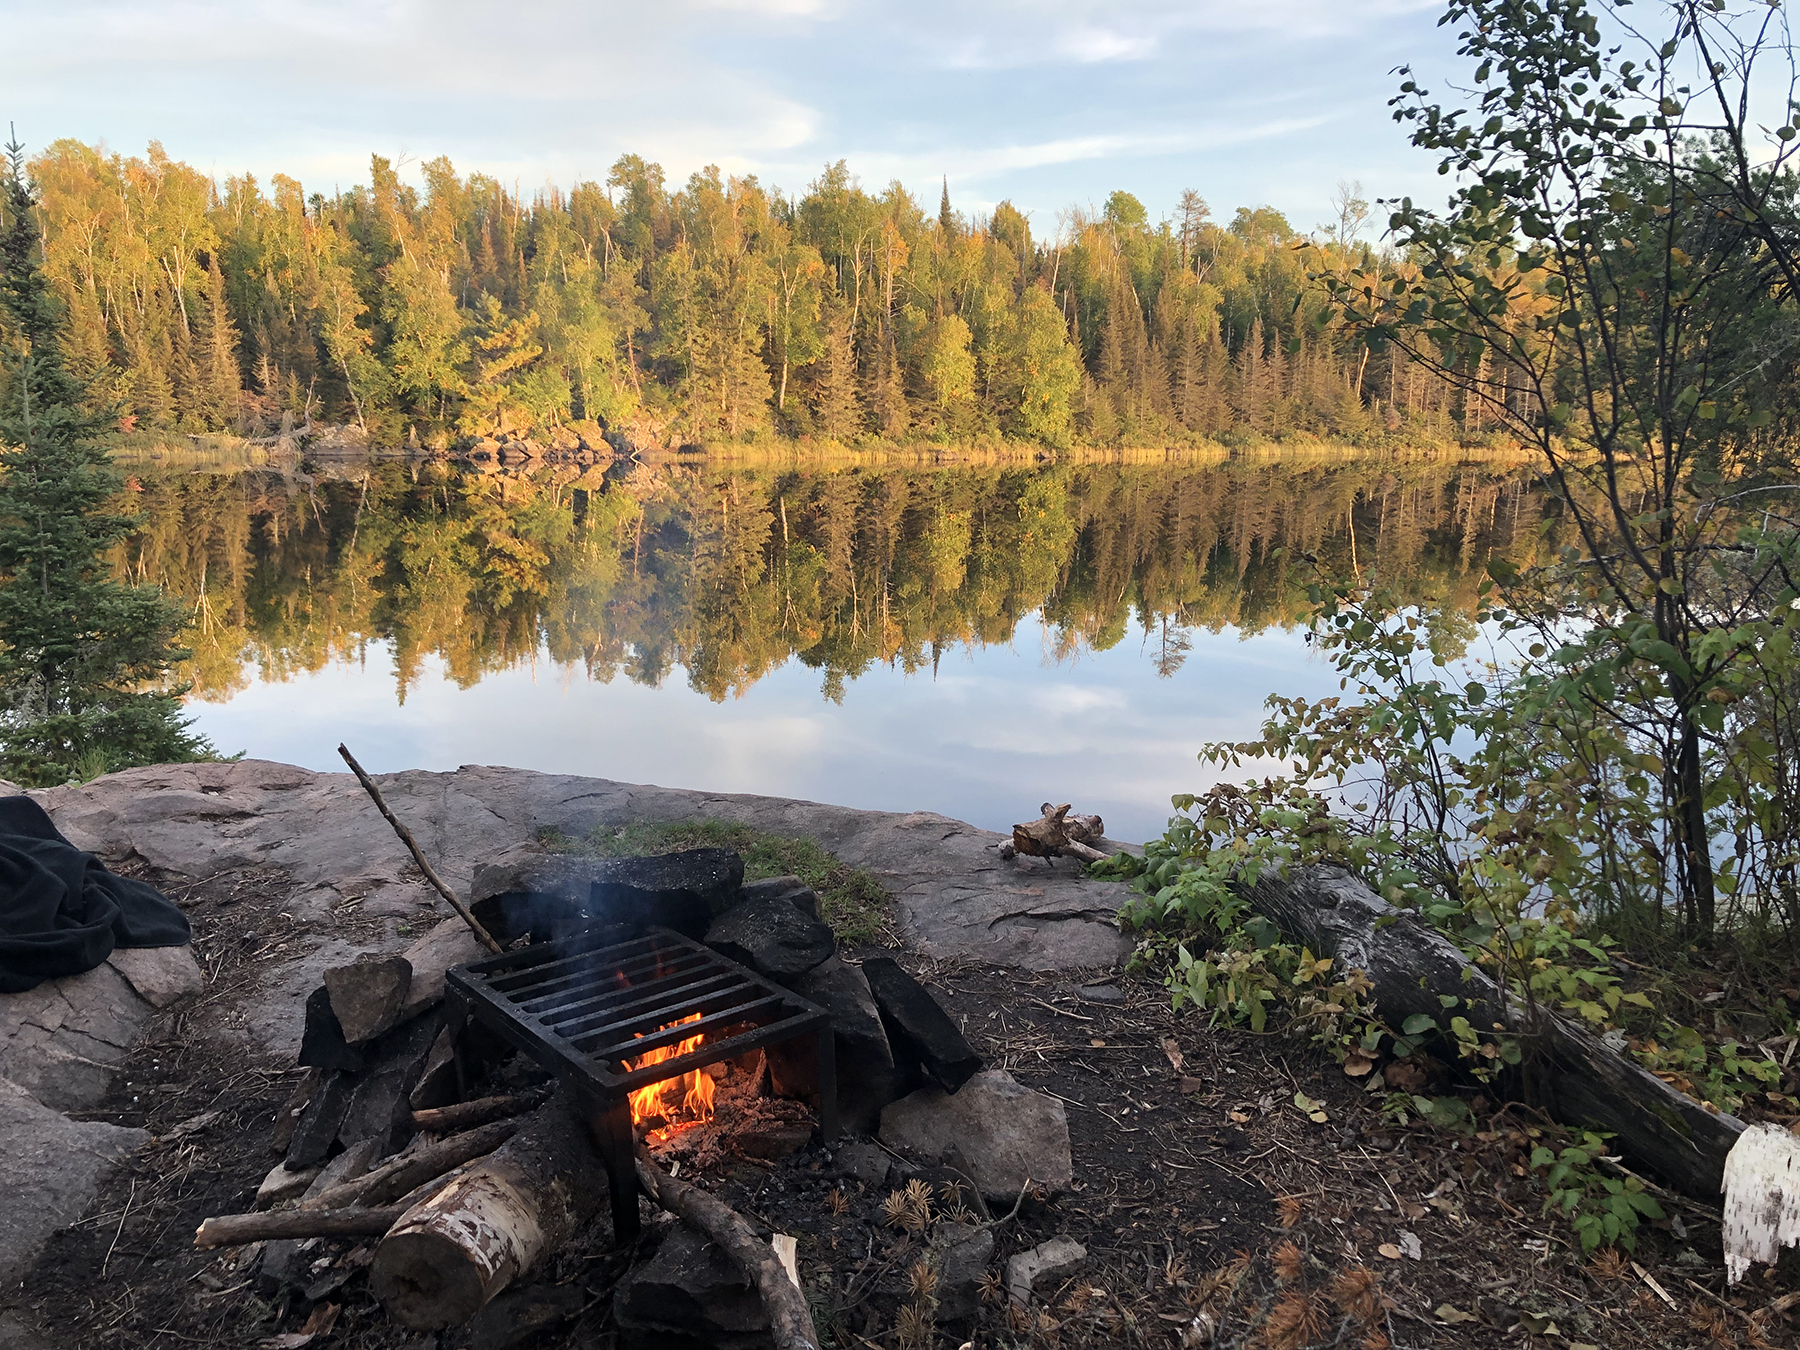 campfire in front of a lake